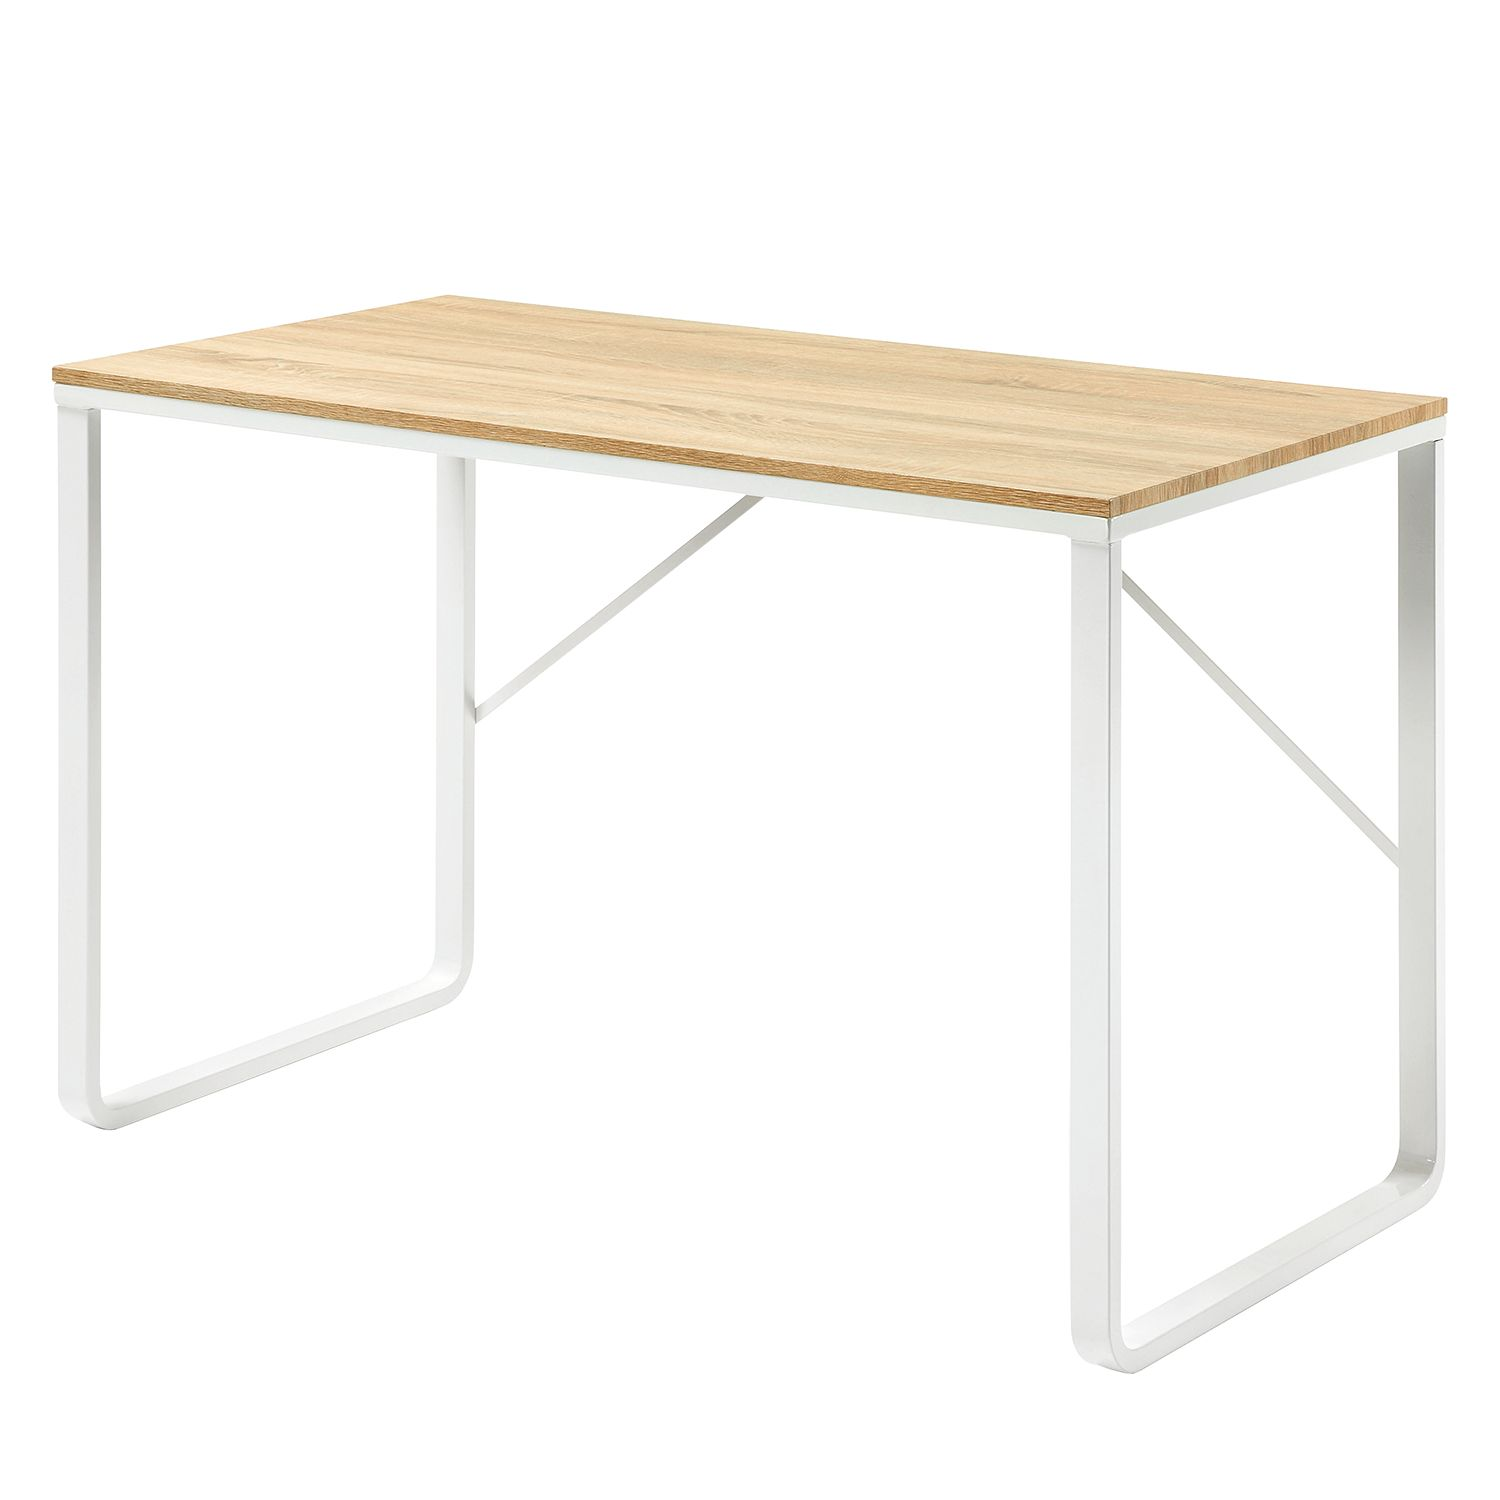 Home 24 - Bureau fertilia - imitation peuplier / blanc, morteens